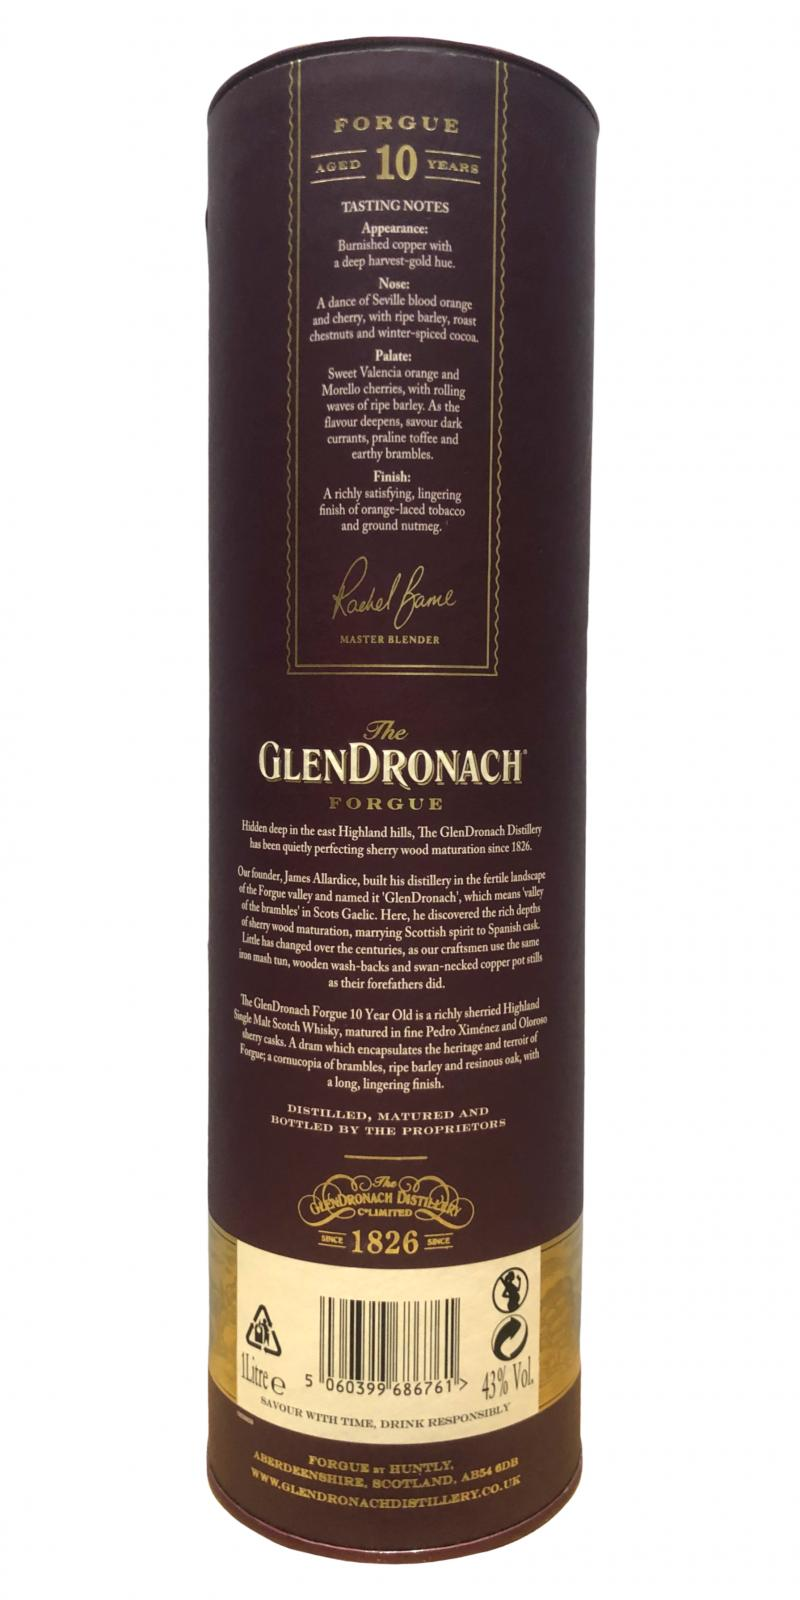 Glendronach 10-year-old Forgue